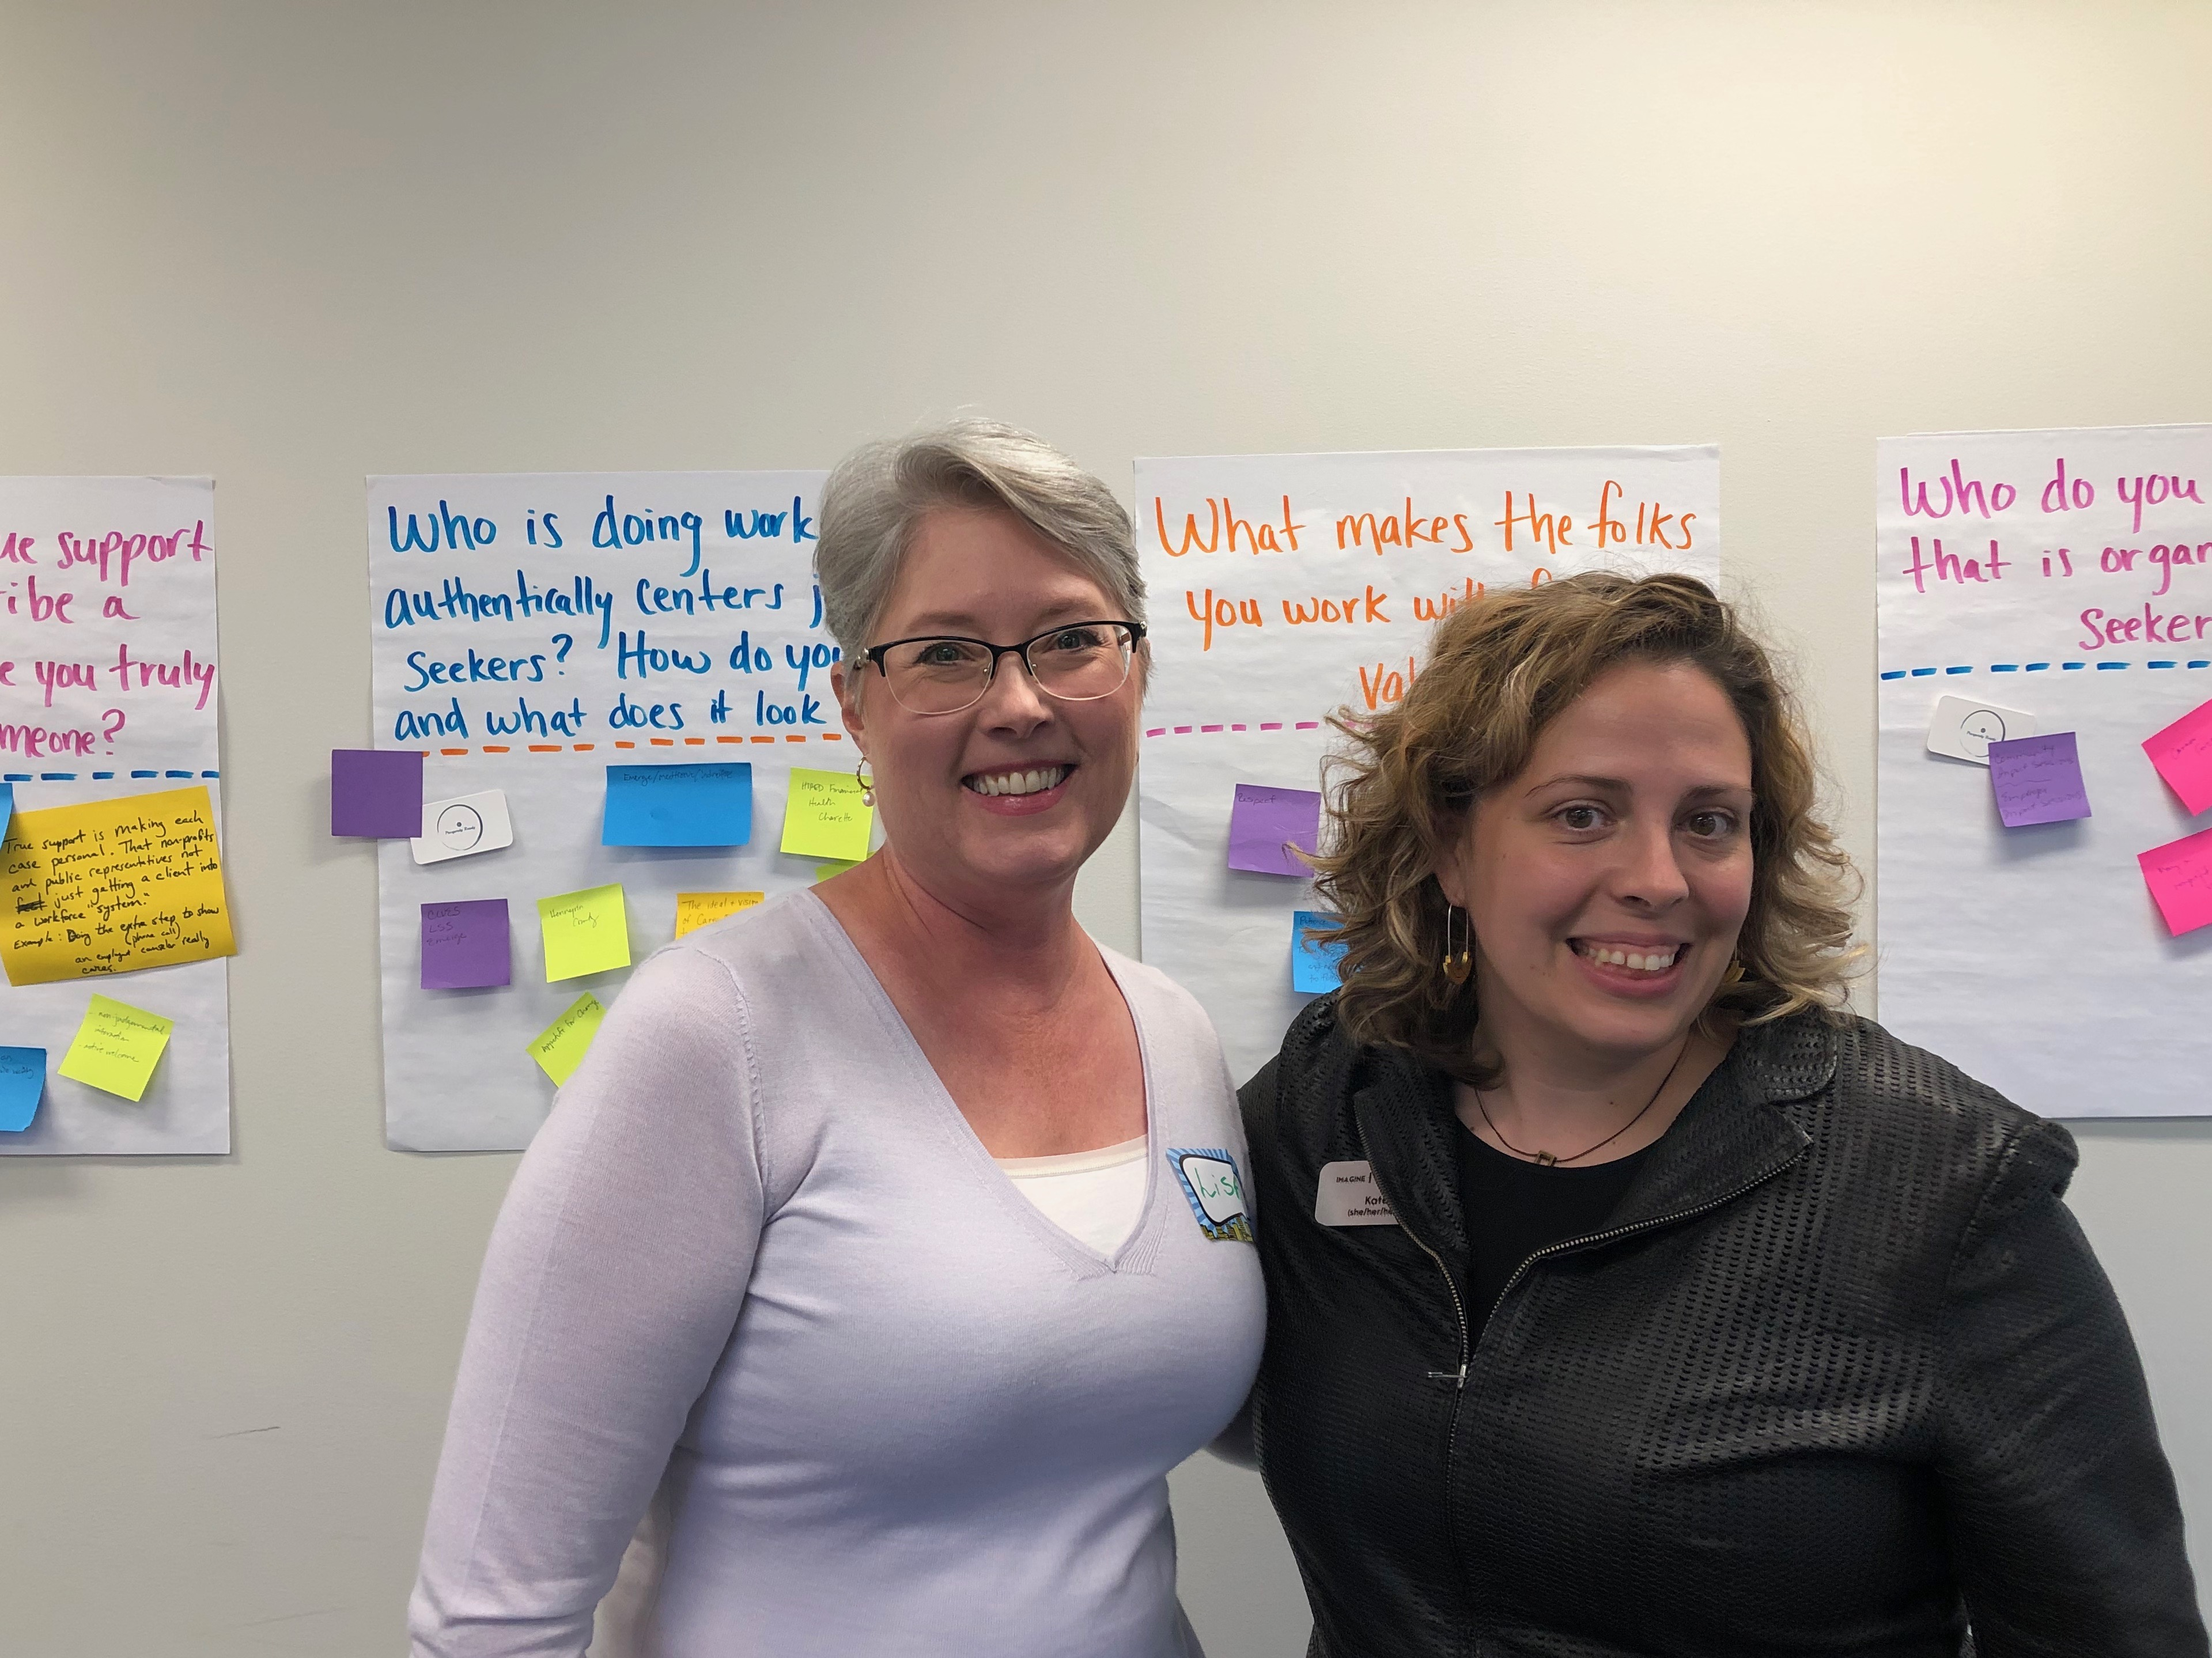 August 2019 MSPWin.org Focus Group